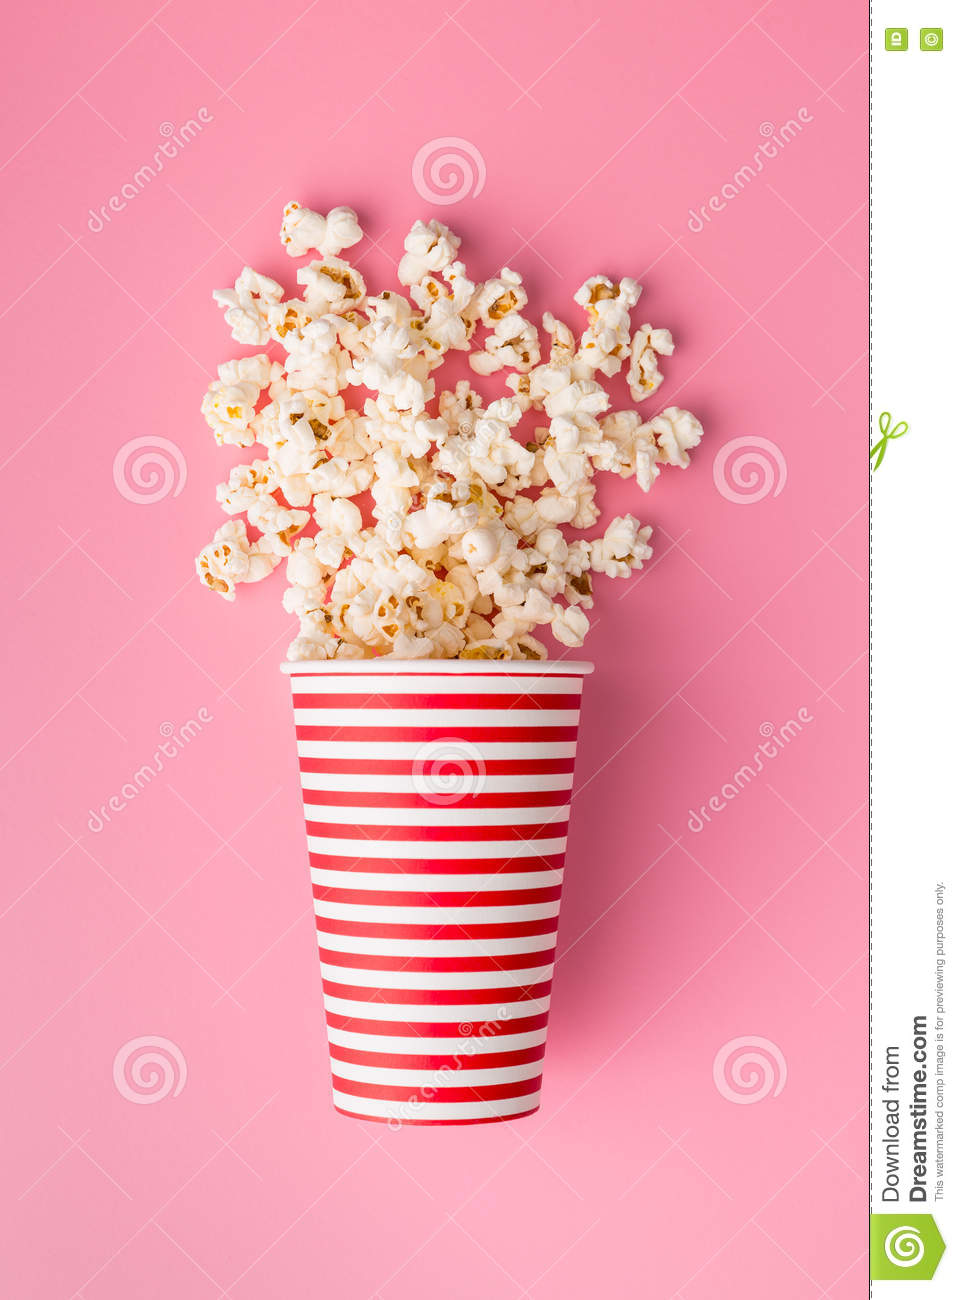 Download Popcorn in paper cup stock image. Image of fresh, salty - 77764713